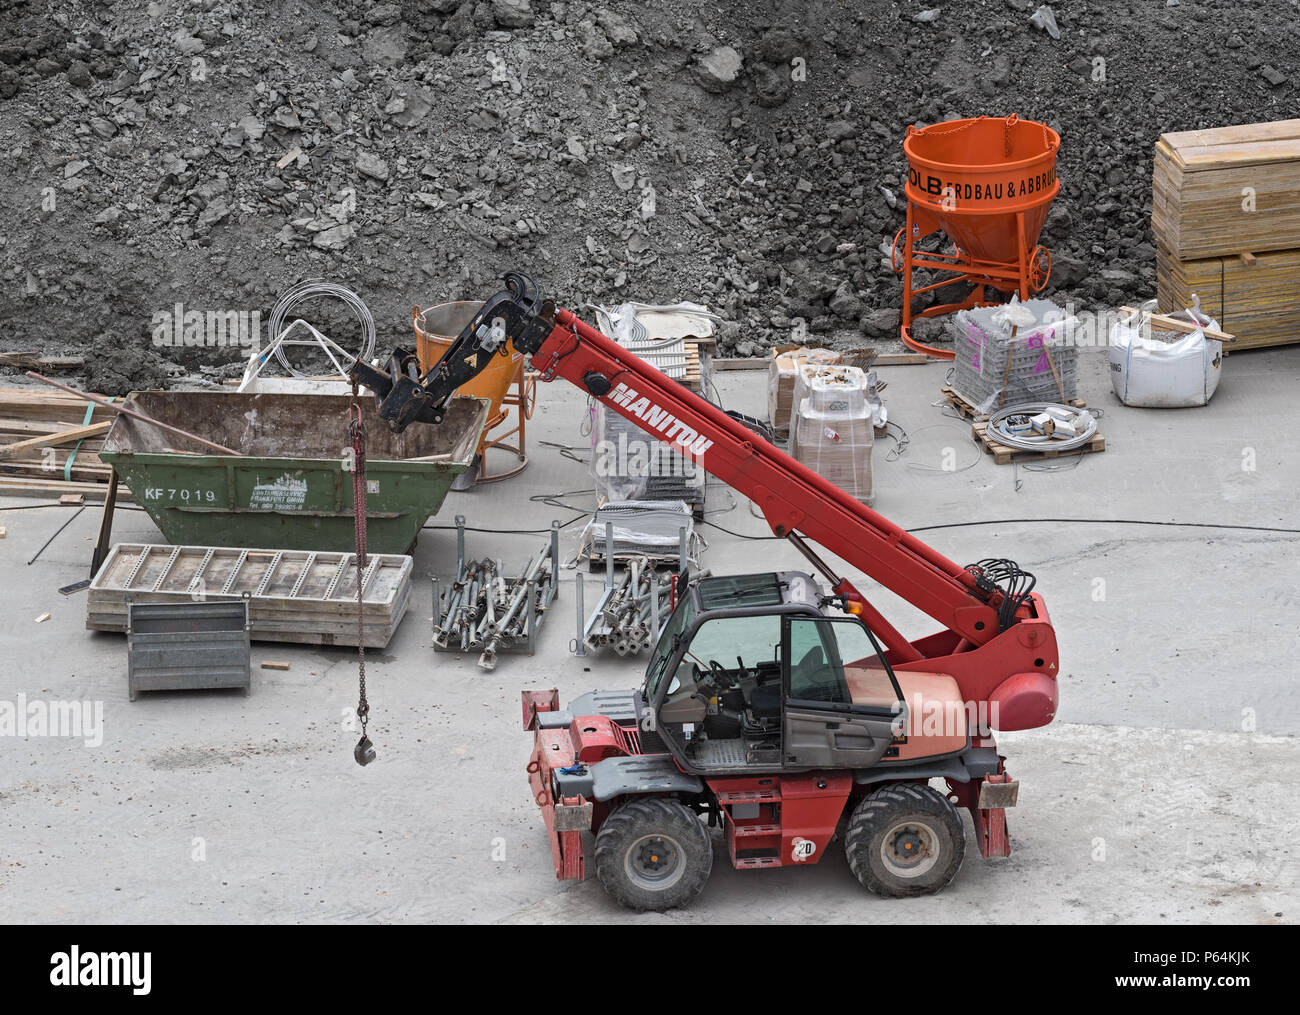 telescopic loader on a construction site Stock Photo